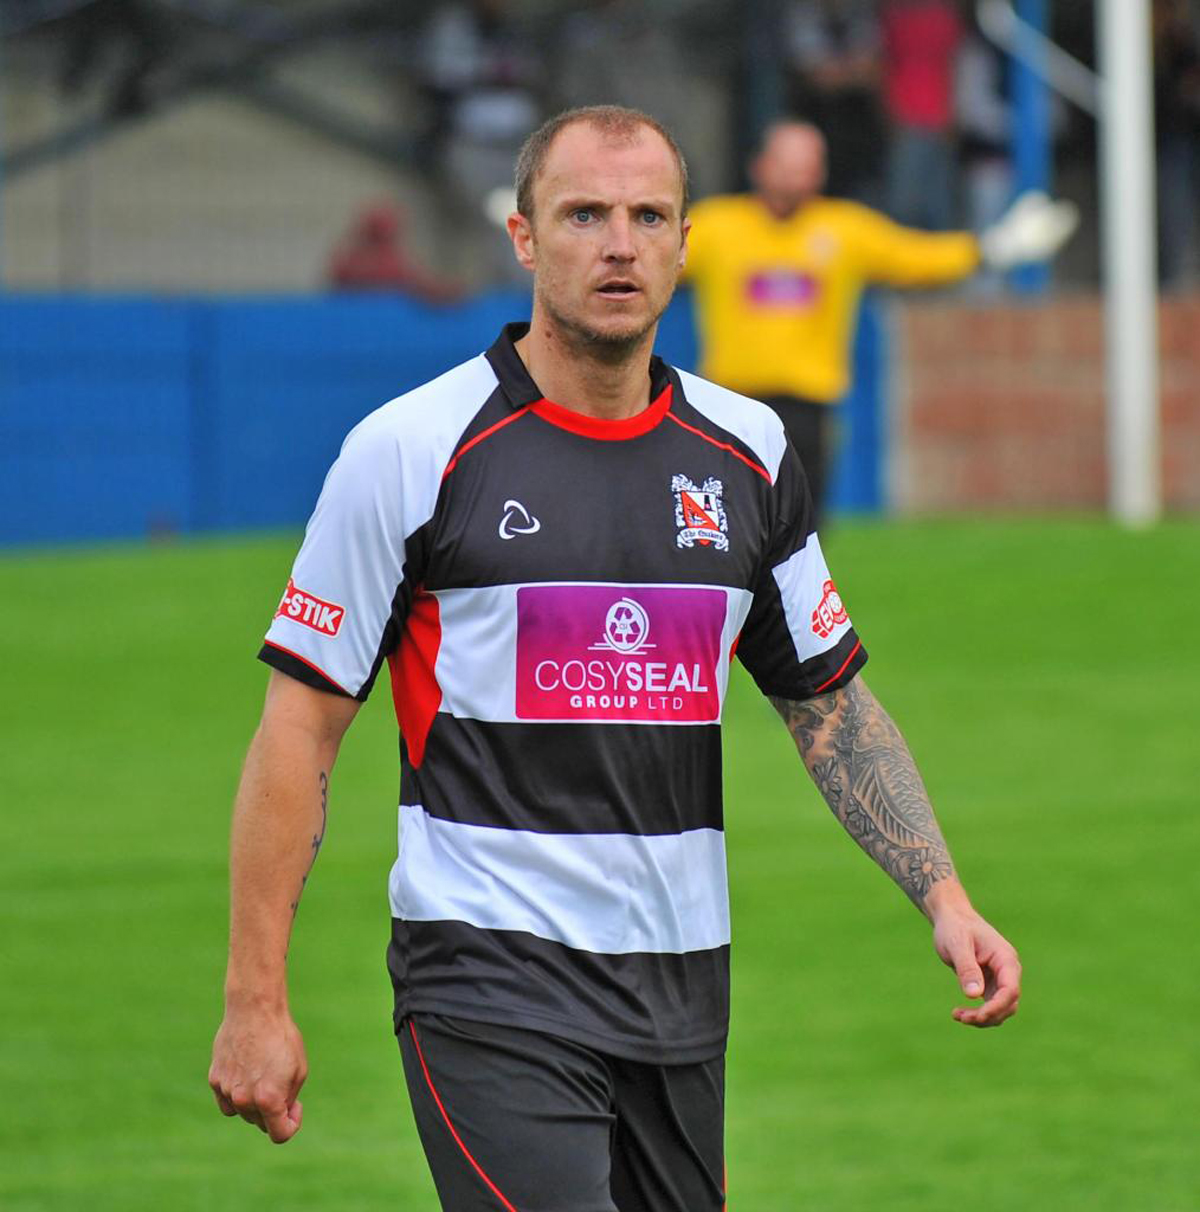 THREE TIMES A QUAKER: Darlington defender Alan White